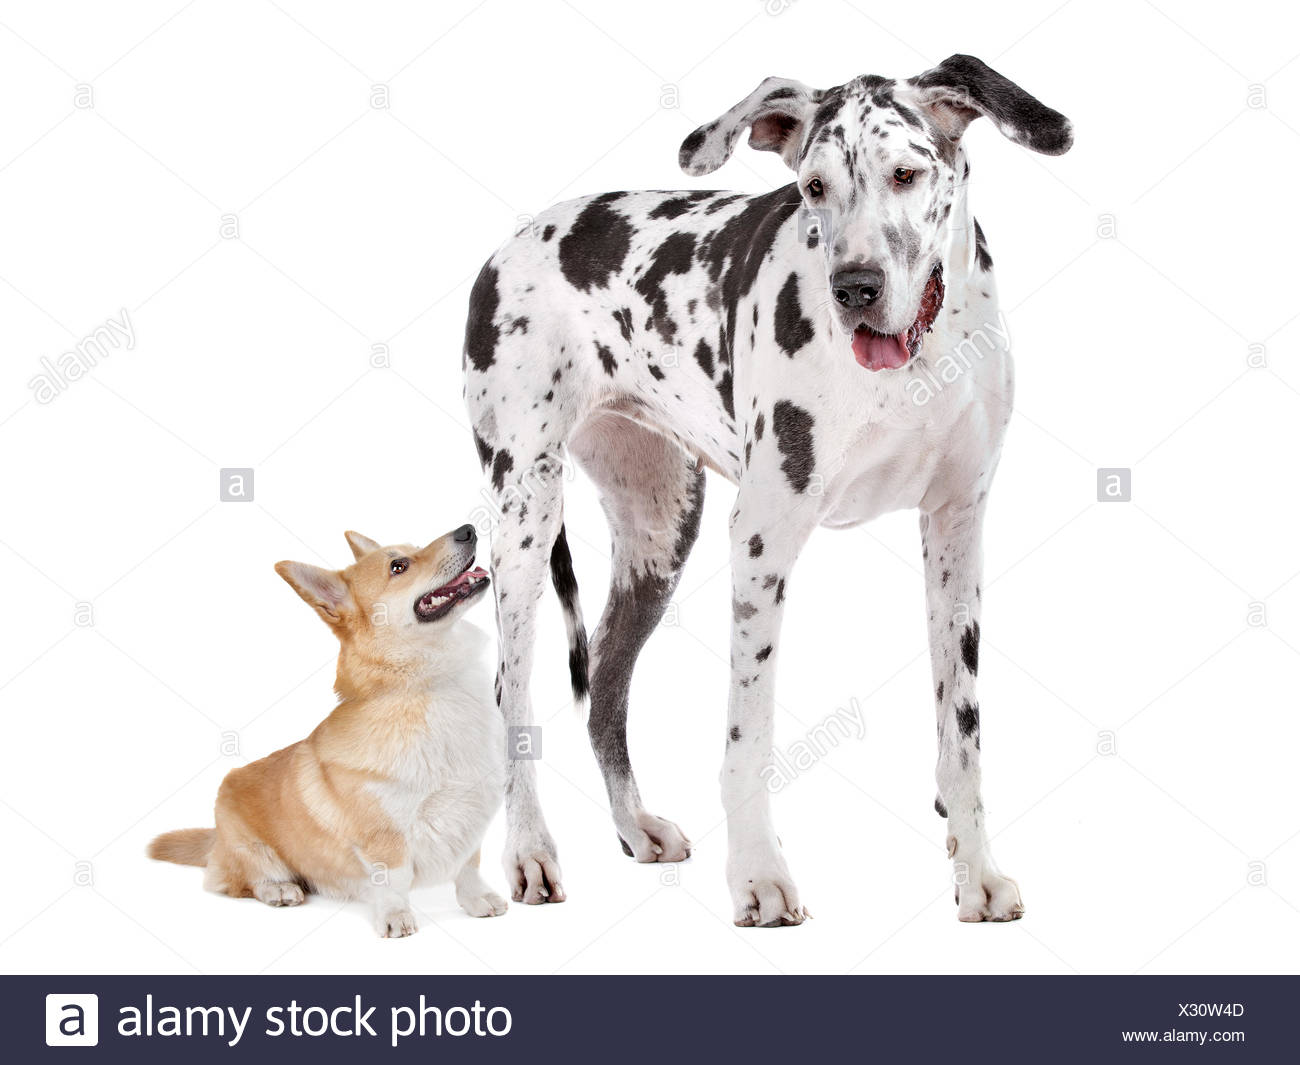 Harlequin Great Dane and aPembroke Welsh Corgi dog - Stock Image